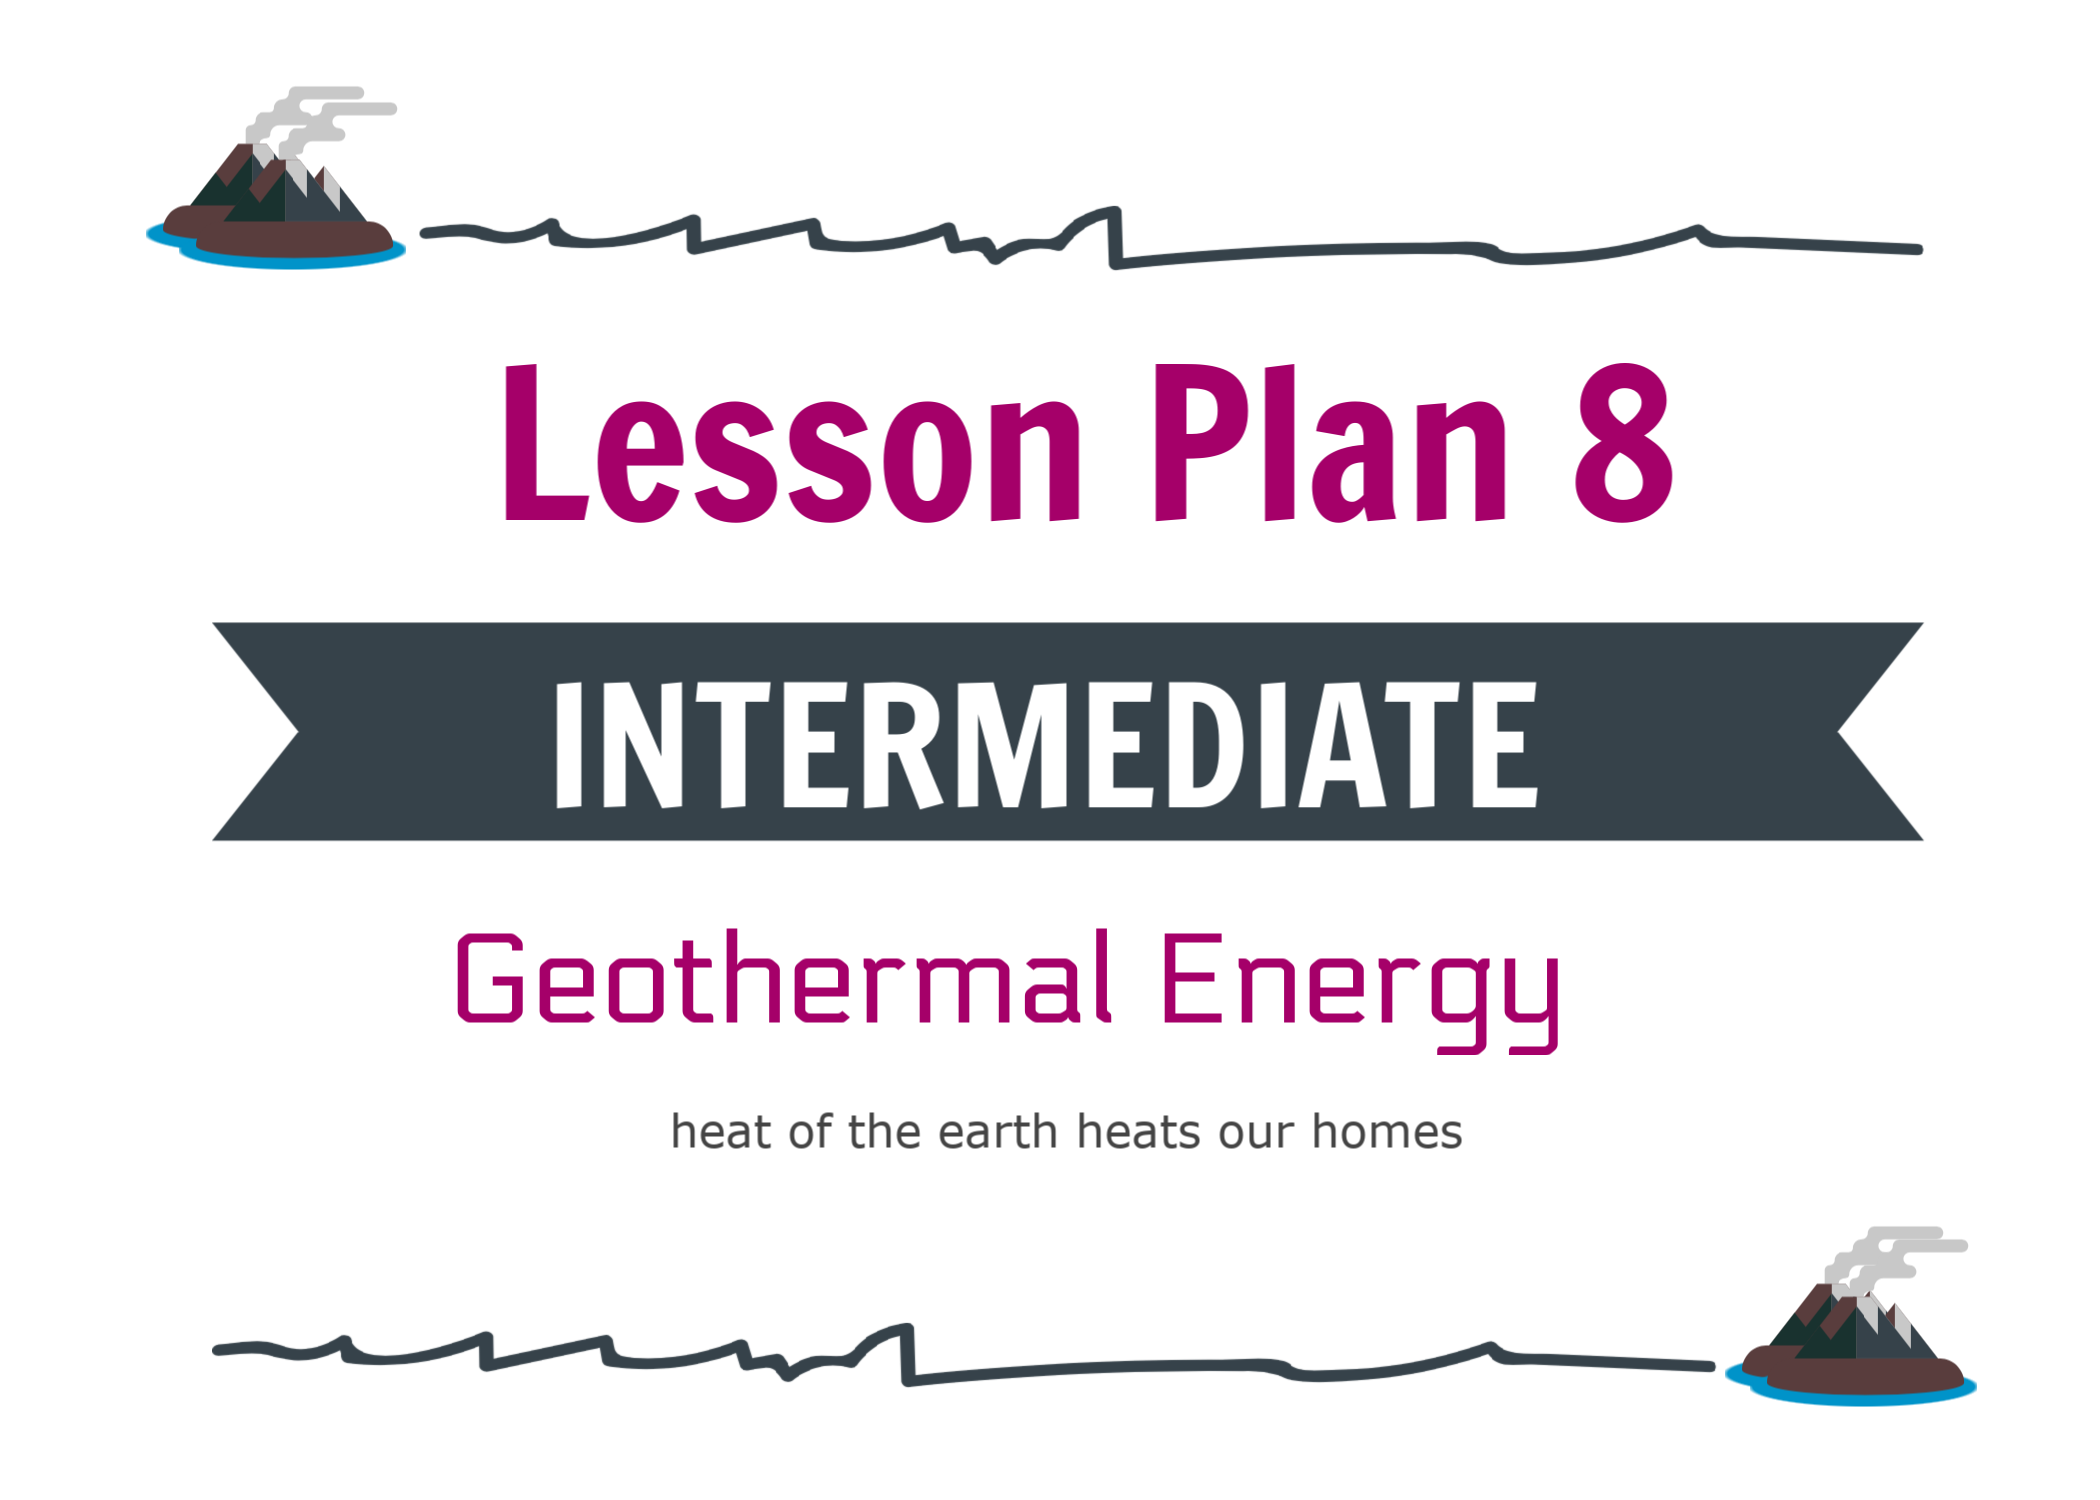 - Includes all BASIC content + an explanation on dry steam and flash steam geothermal energy technologies.